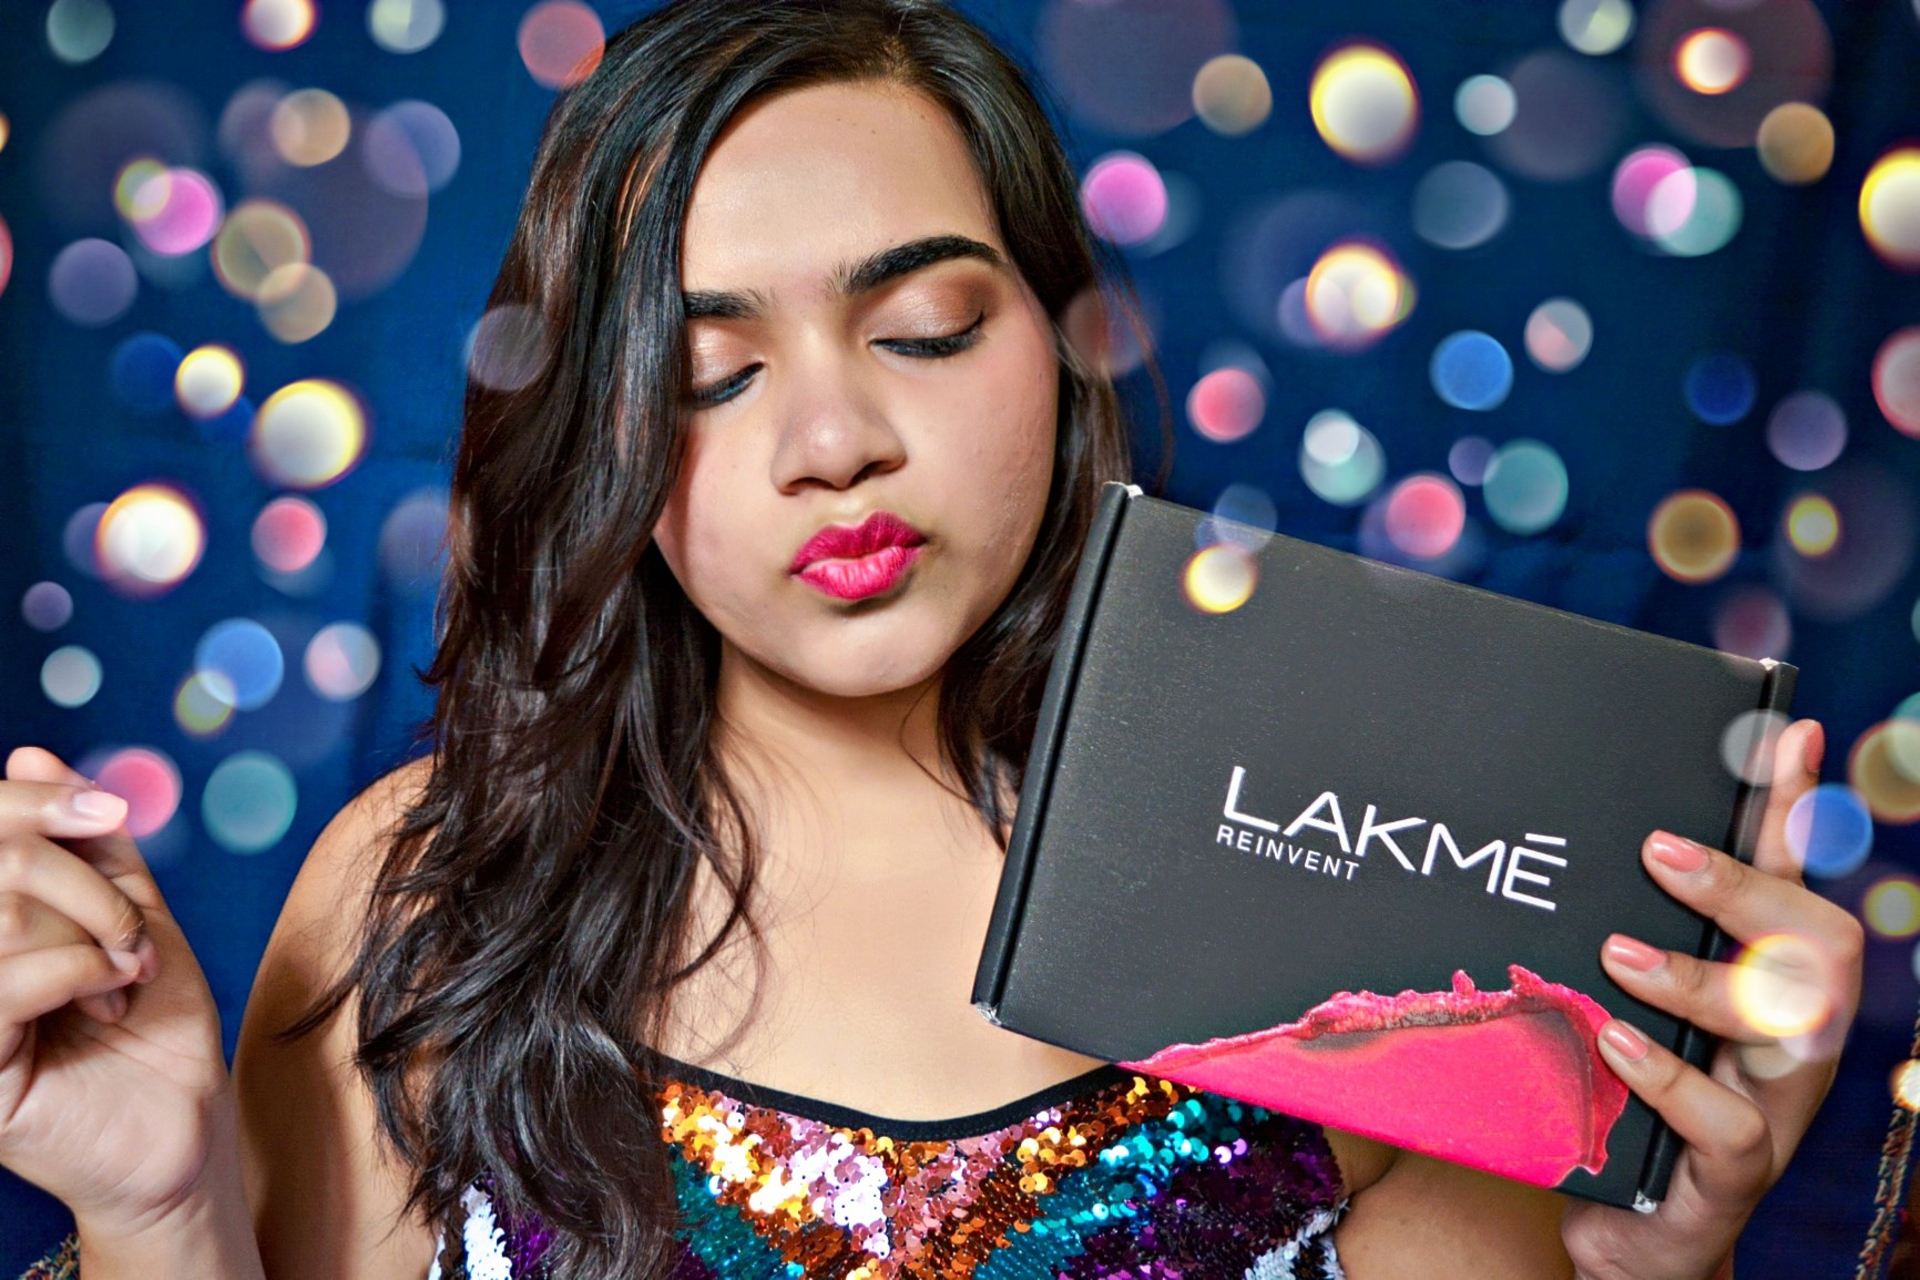 Lakme Makeup Look + First Impressions! image